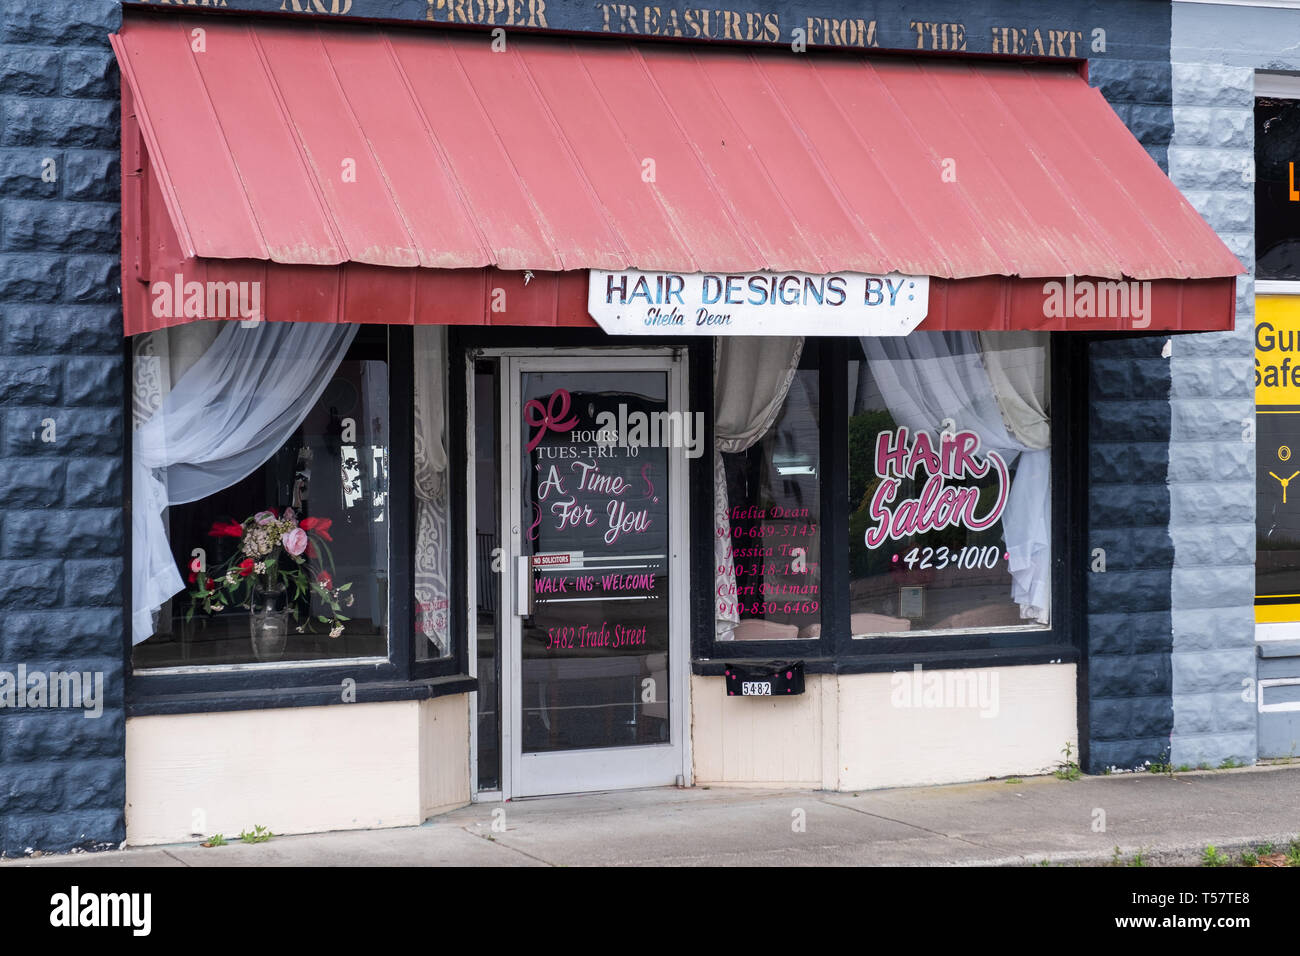 HOPE MILLS, NC - CIRCA April 2019 : Hair Salon, A time for you, hair designs Stock Photo